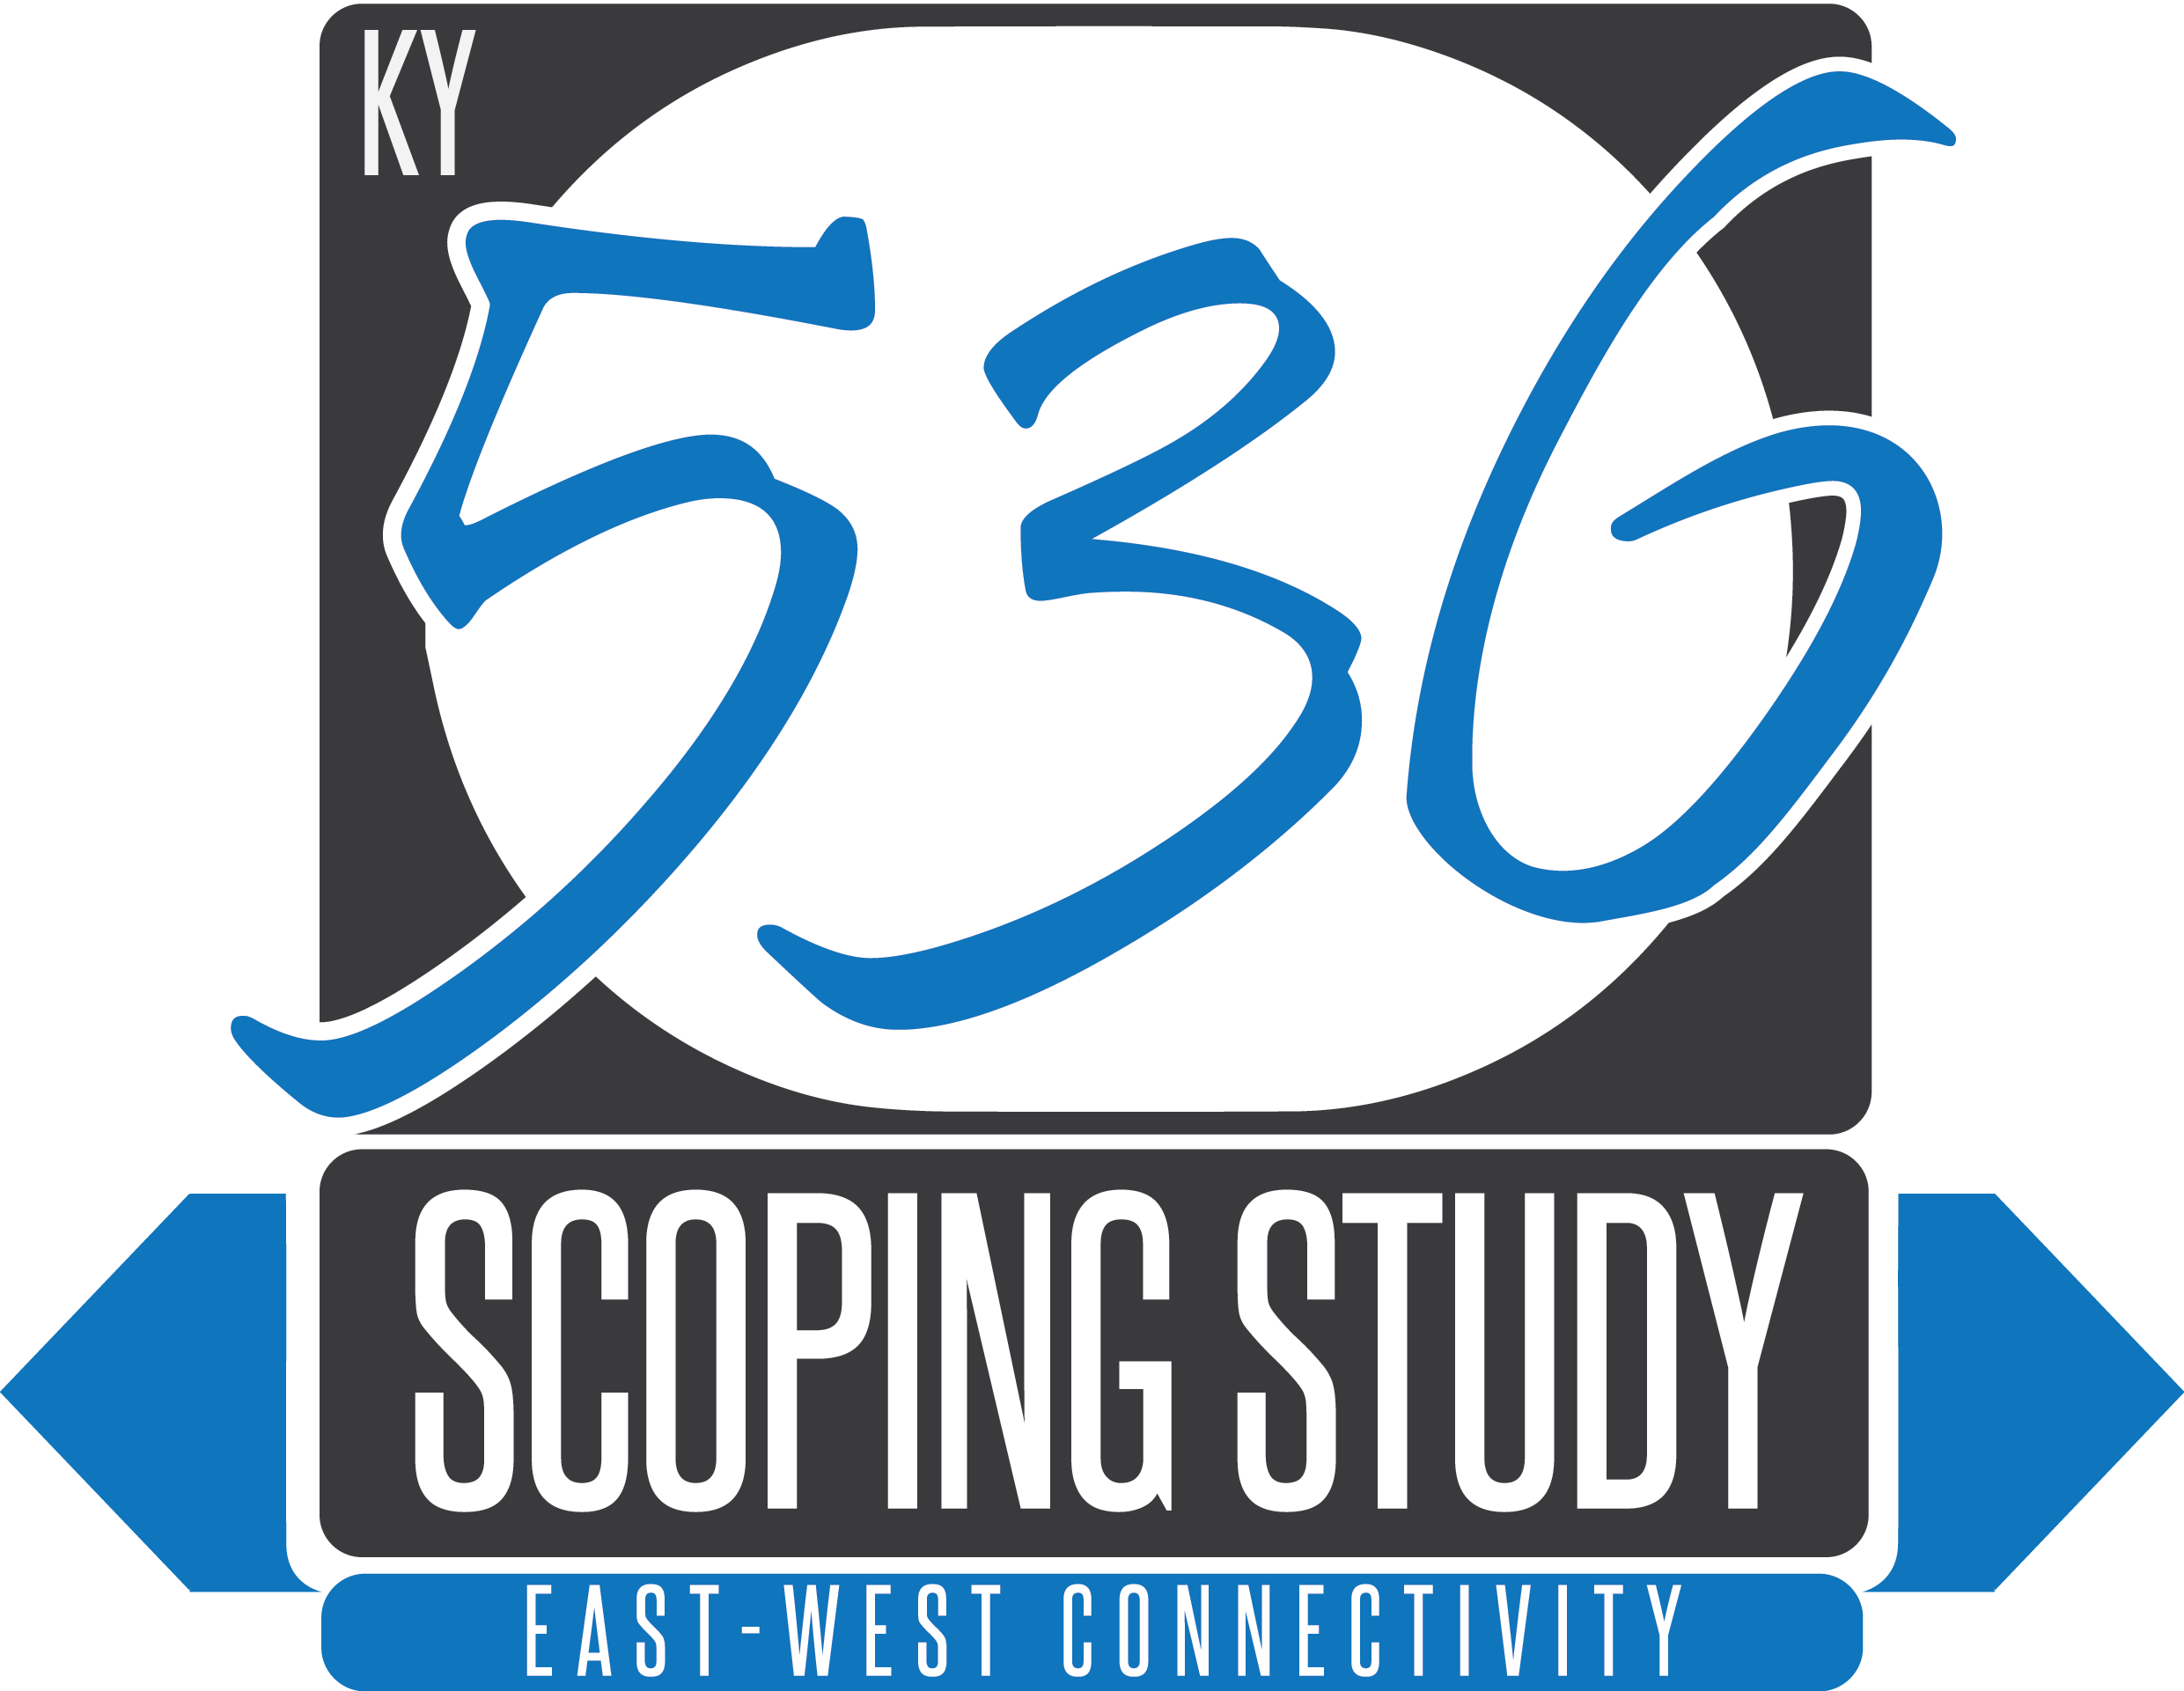 KY 536 Scoping Study, Draft Alternatives Comment Form